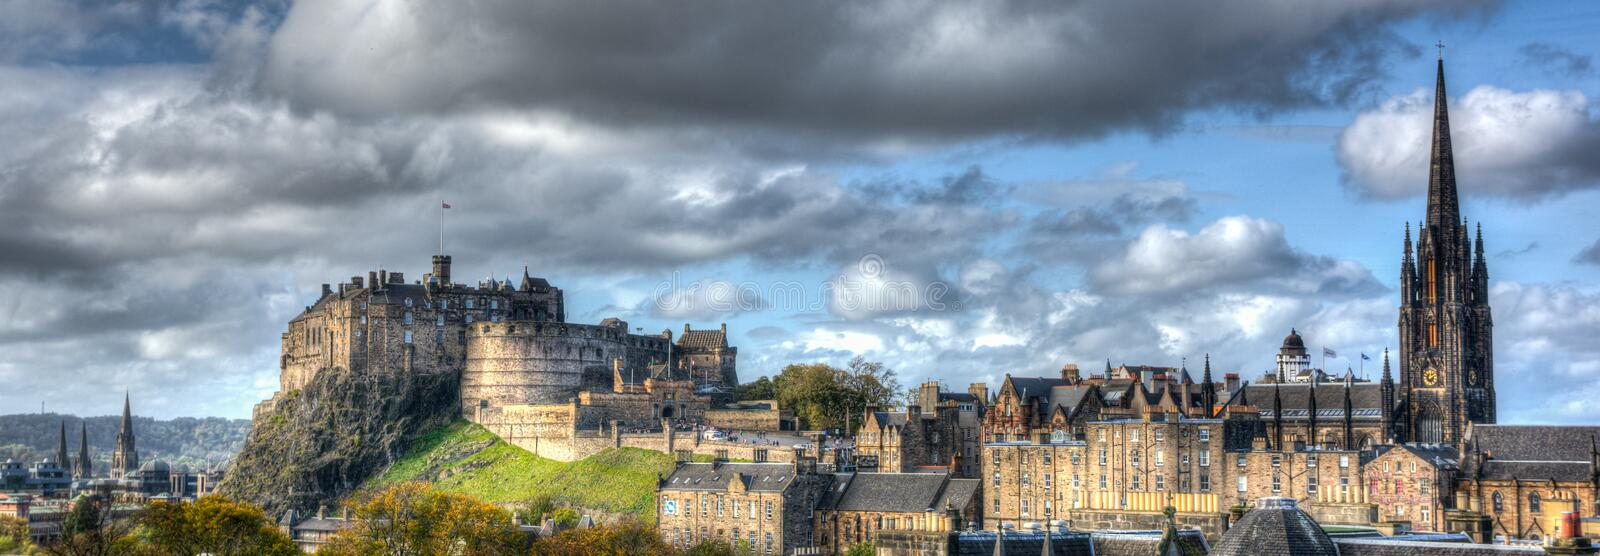 Edinburgh, Scotland royalty free stock image